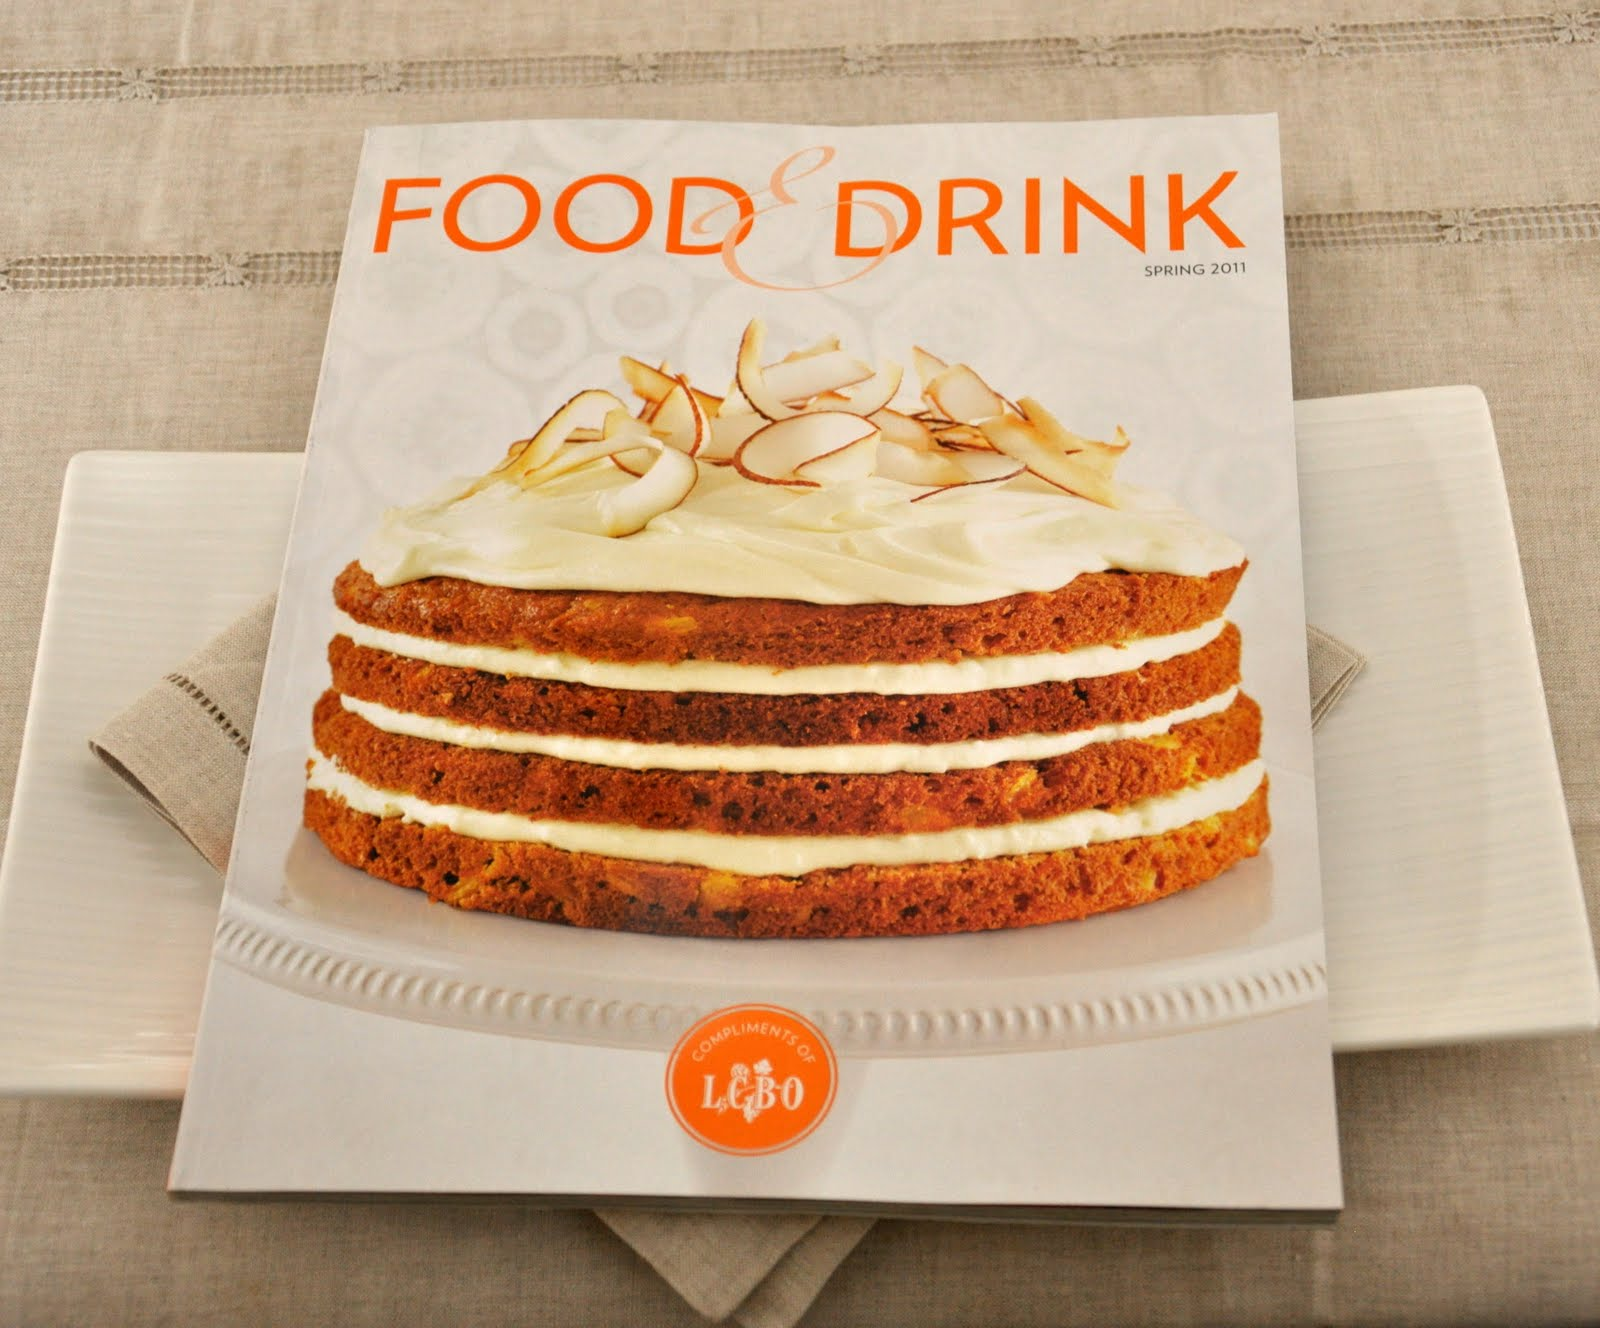 drink food lcbo magazine spring issue recipes cake music discover